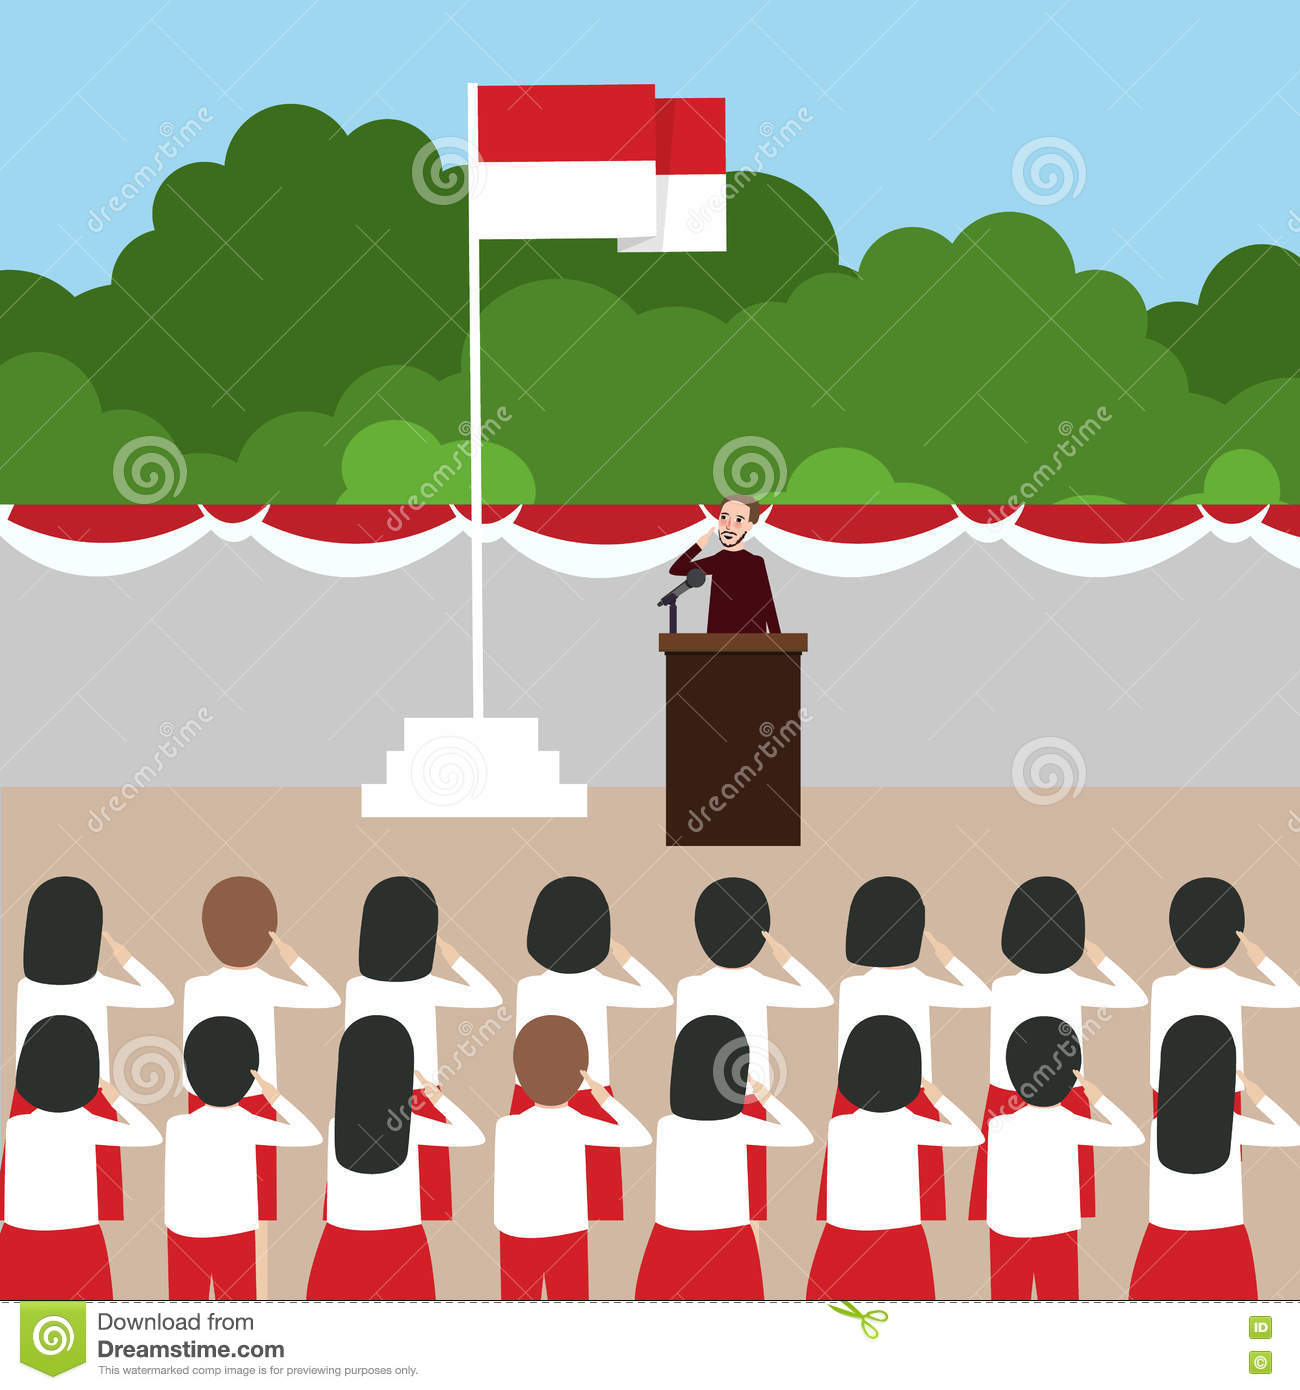 Indonesia independence day clipart vector free Indonesian Independent Day Stock Vector - Image: 56544657 vector free